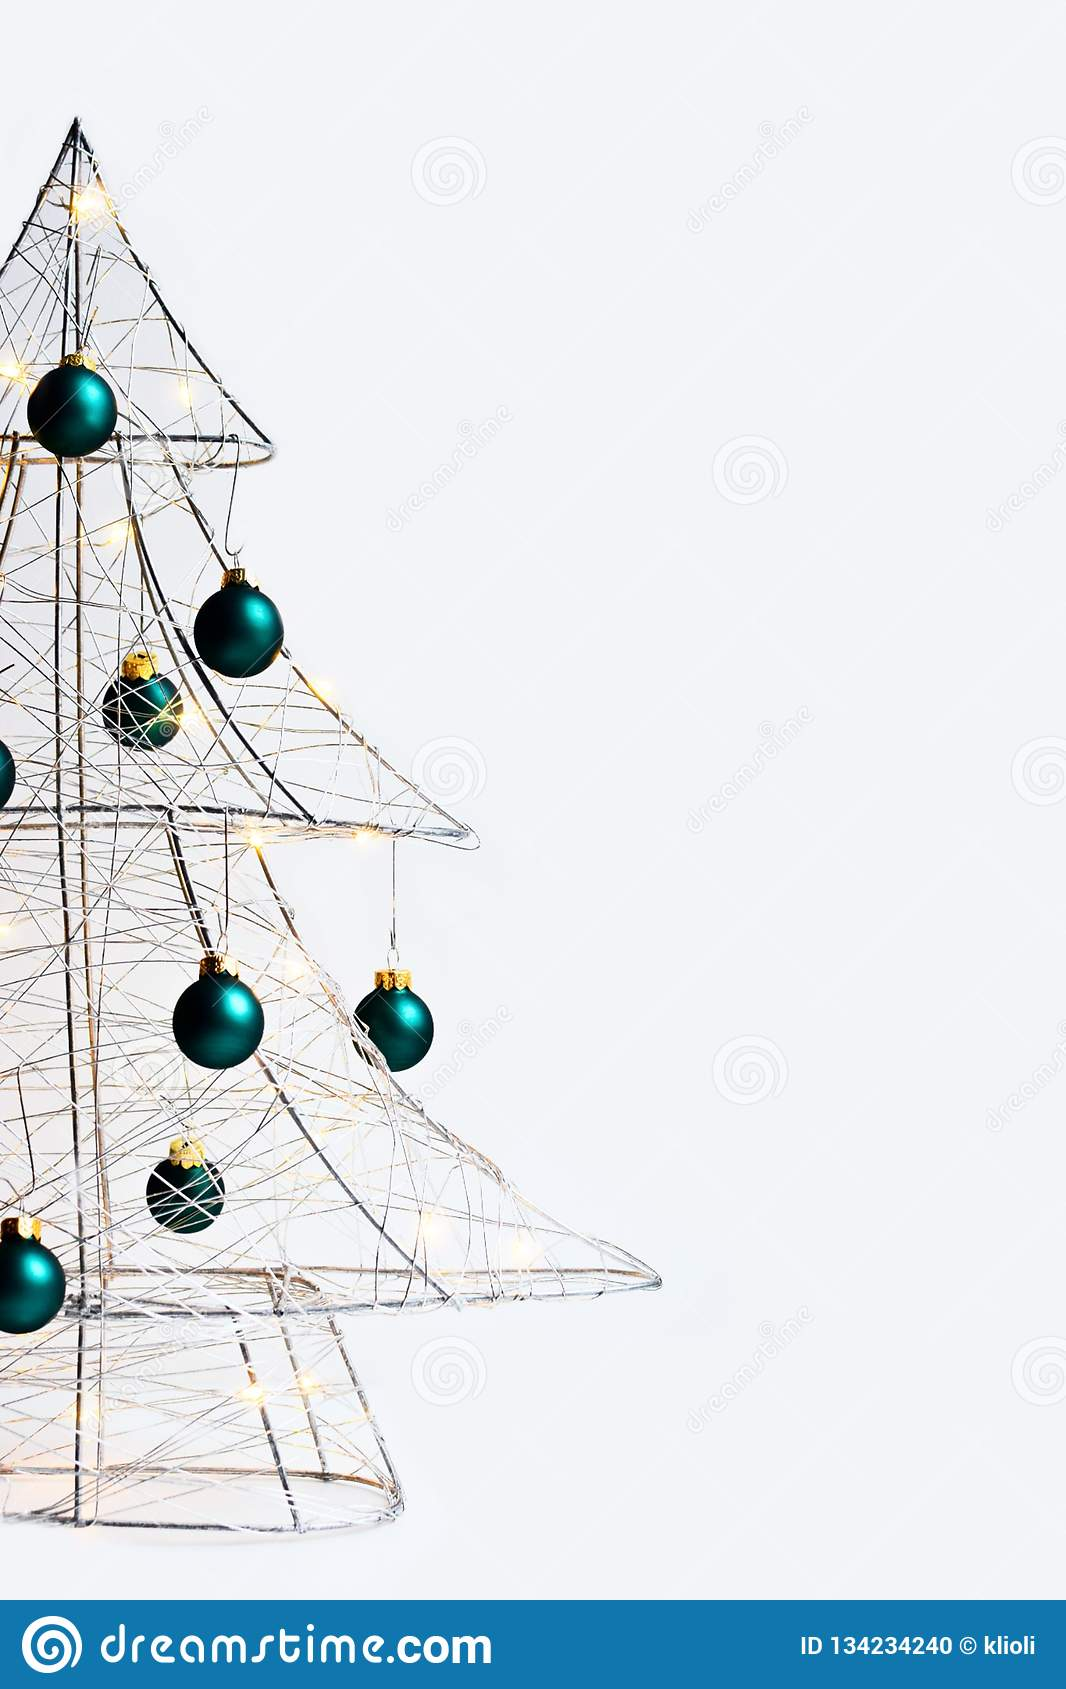 Modern Christmas tree made of silver metal wire, wrapped in a glowing garland and decorated with green balls